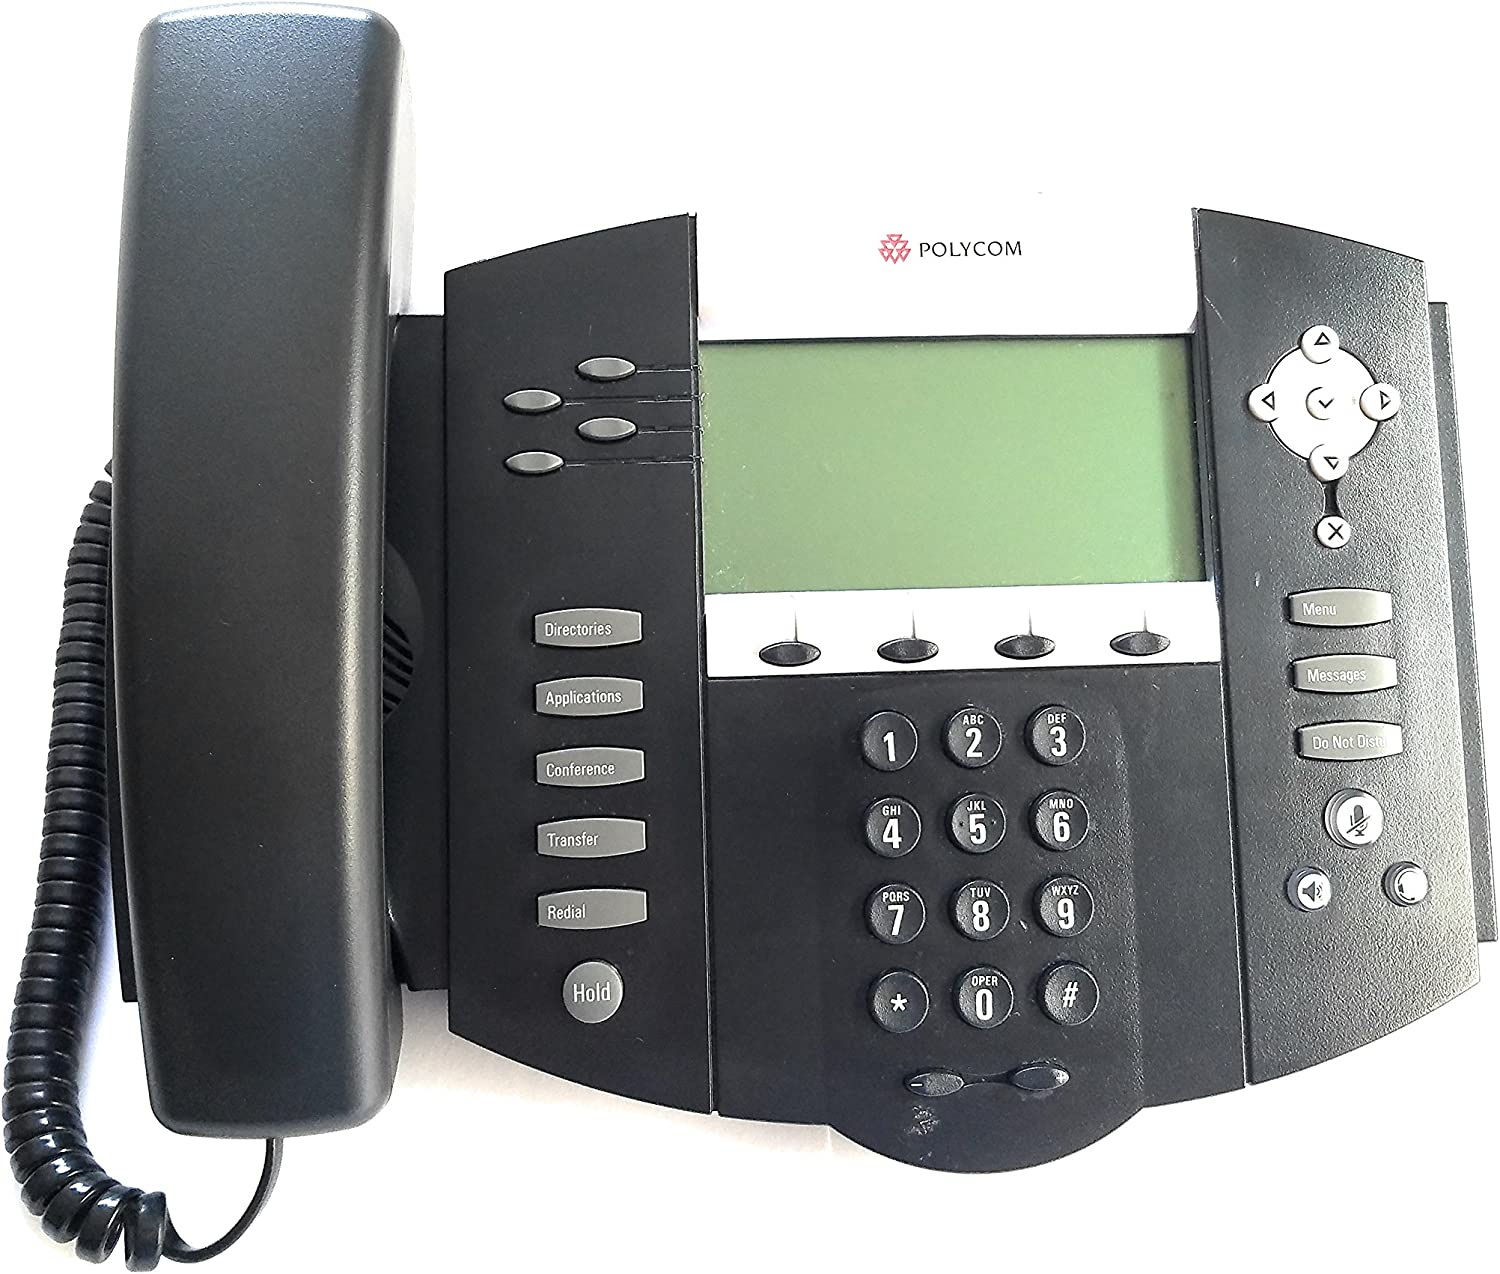 SoundPoint IP 550 SIP 4 line IP desktop phones with HD voice. Compatible Partner Platforms: 20. Country Group: 66, excluding Brazil. Does not include AC power supply. (Part#: 2200-12550-025 ) - NEW